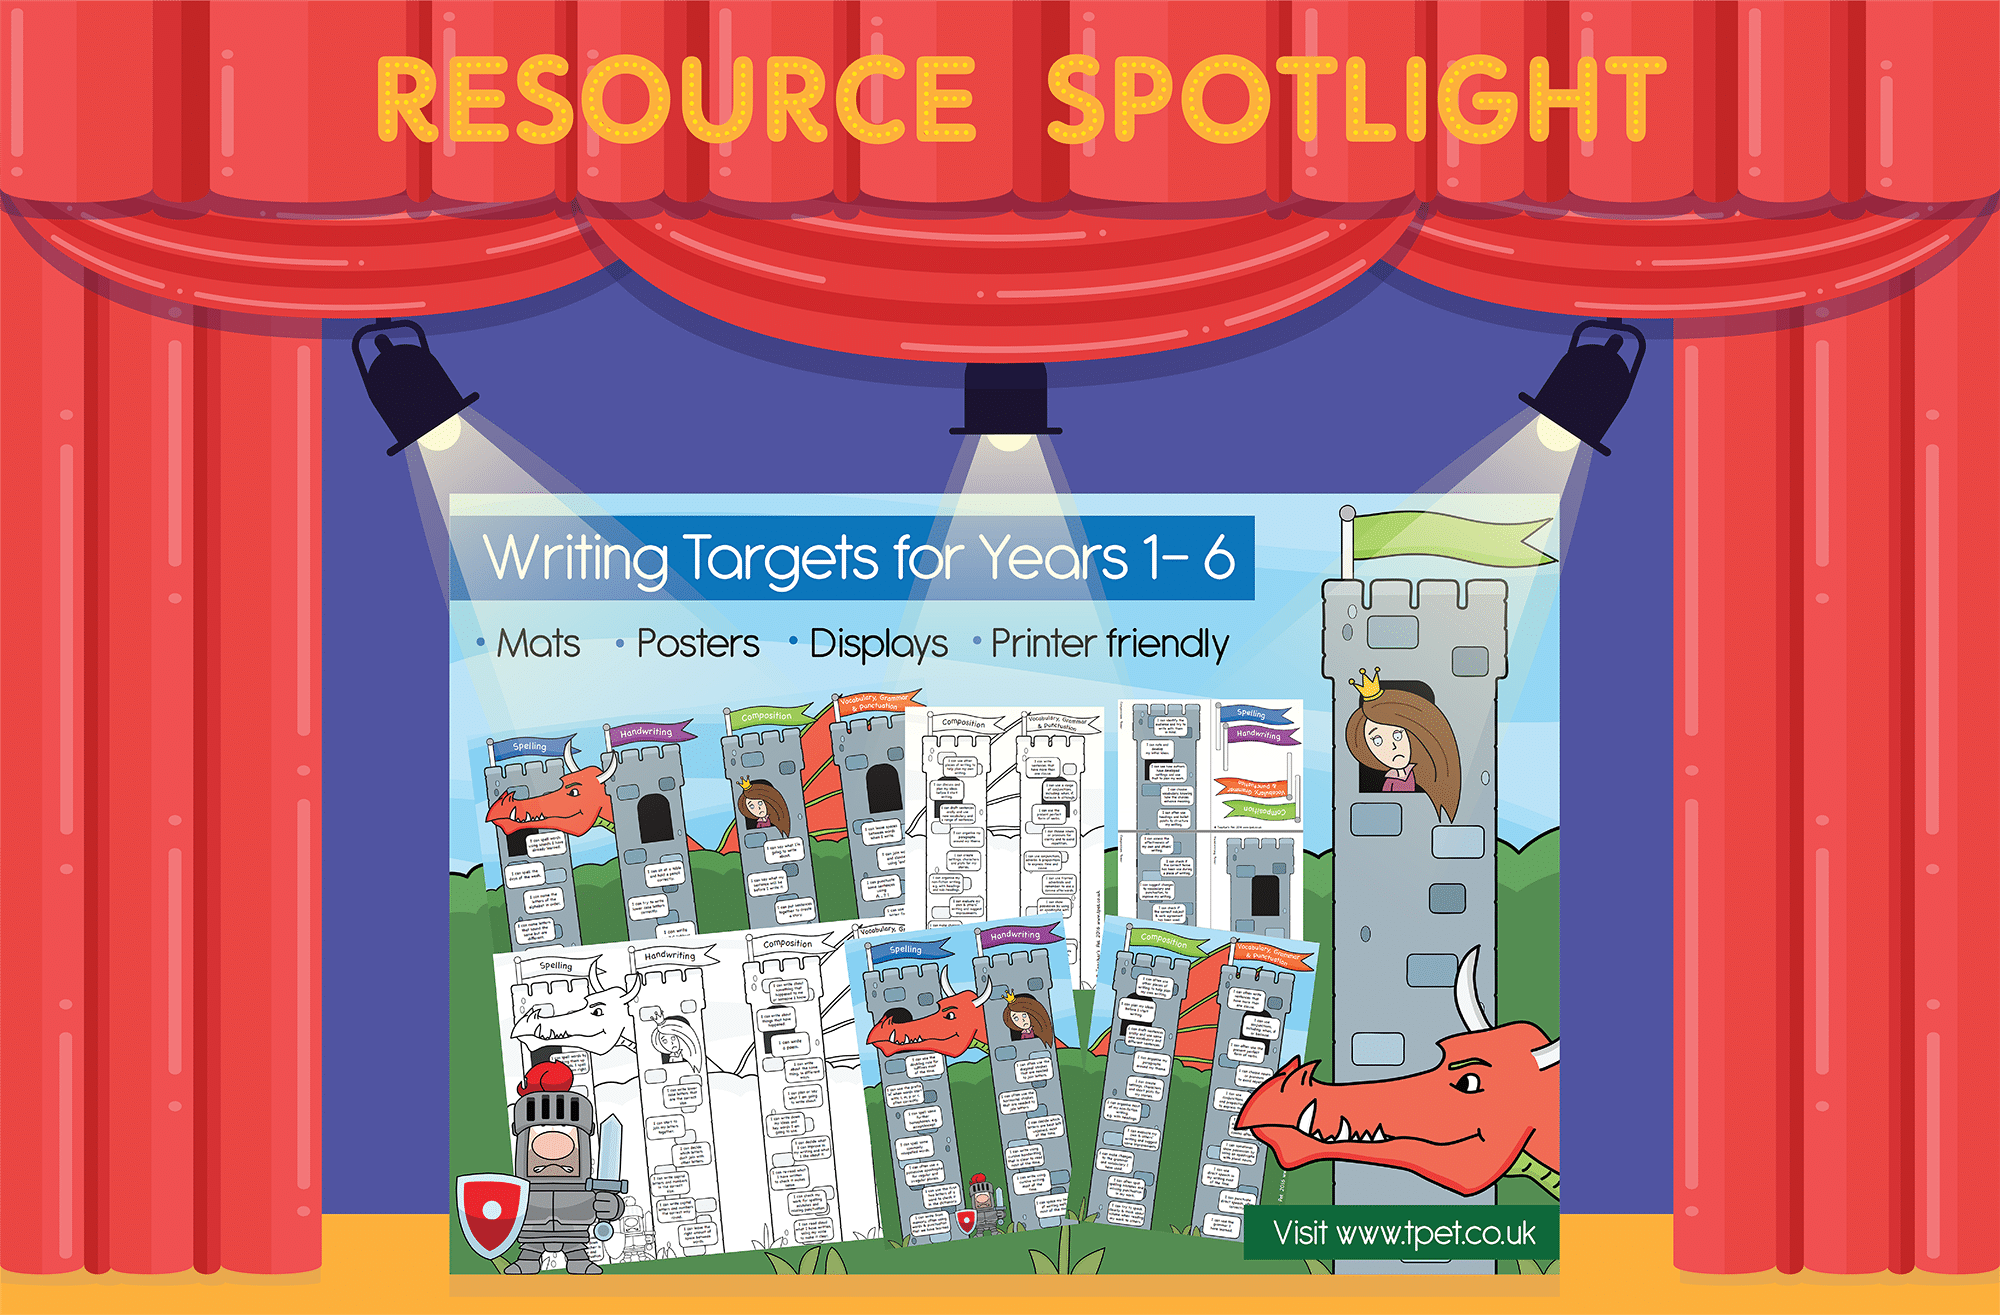 https://cdn.tpet.co.uk/wp-content/uploads/2019/05/resourcespotlight-3.png